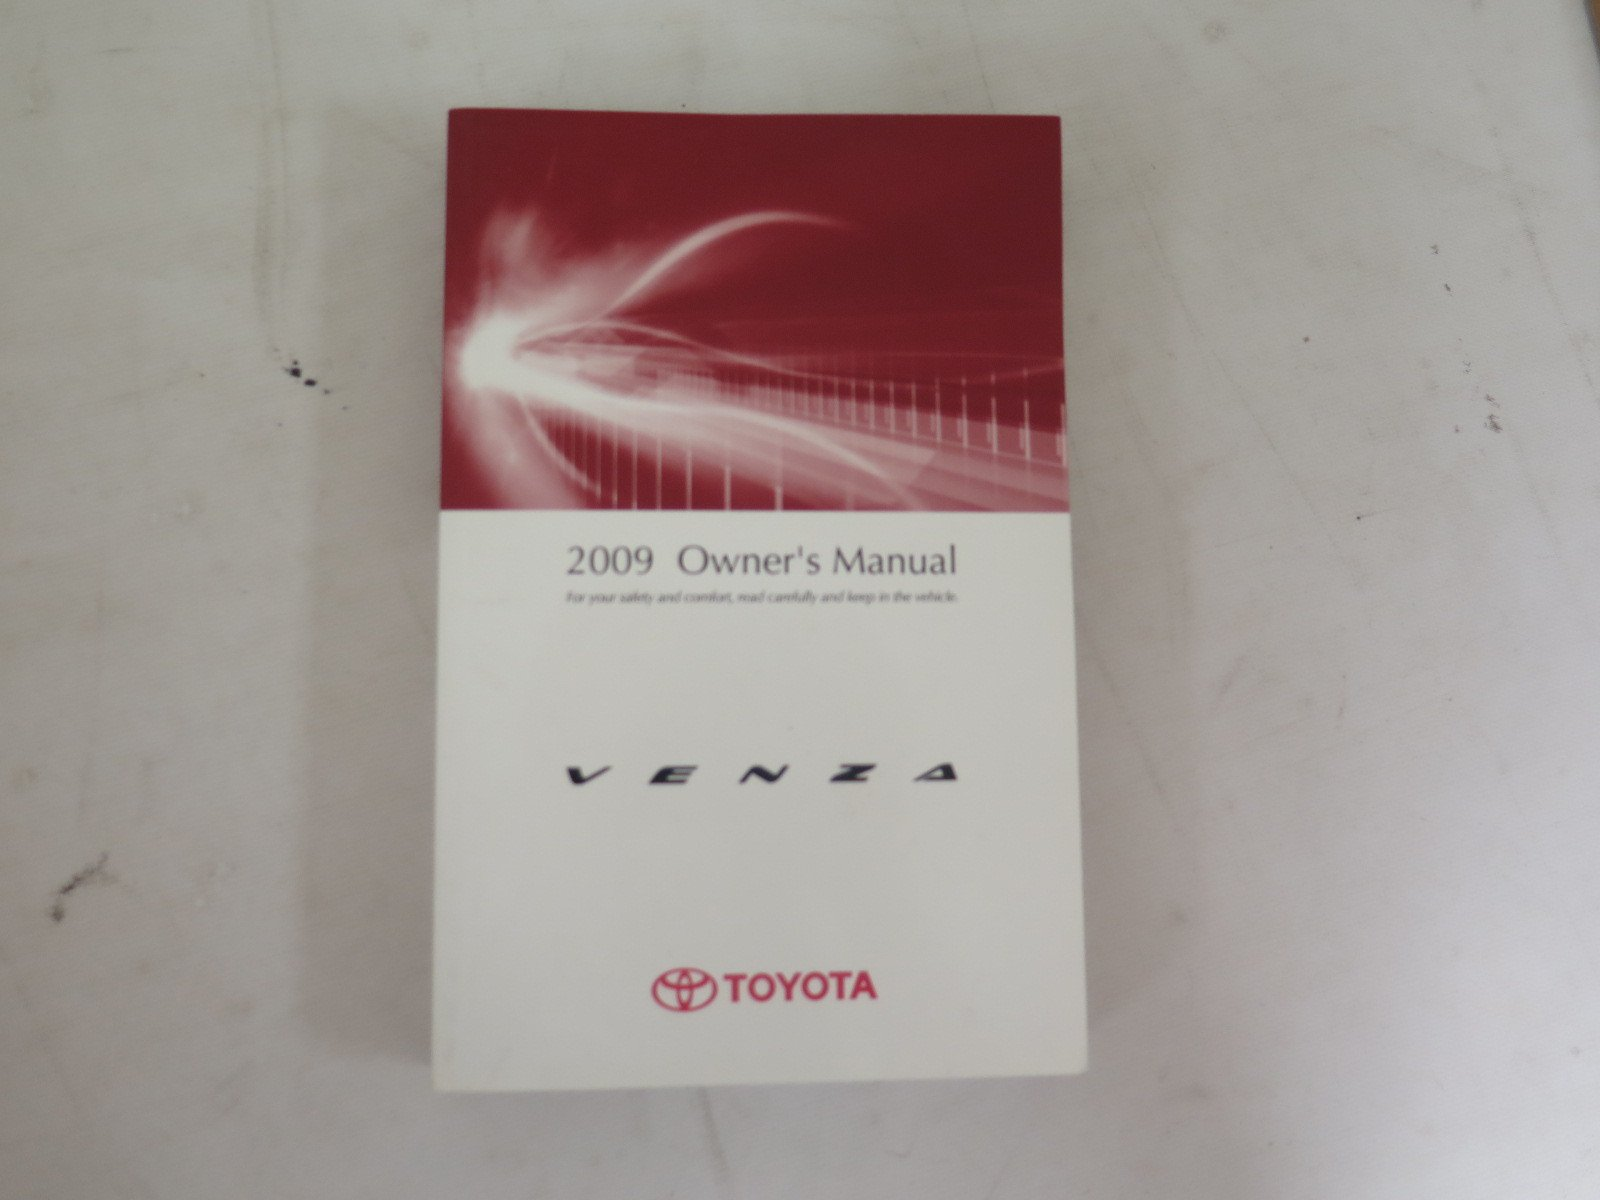 2009 toyota venza owners manual guide book toyota 7426817595240 rh amazon com 2013 Toyota Venza 2010 Toyota Venza